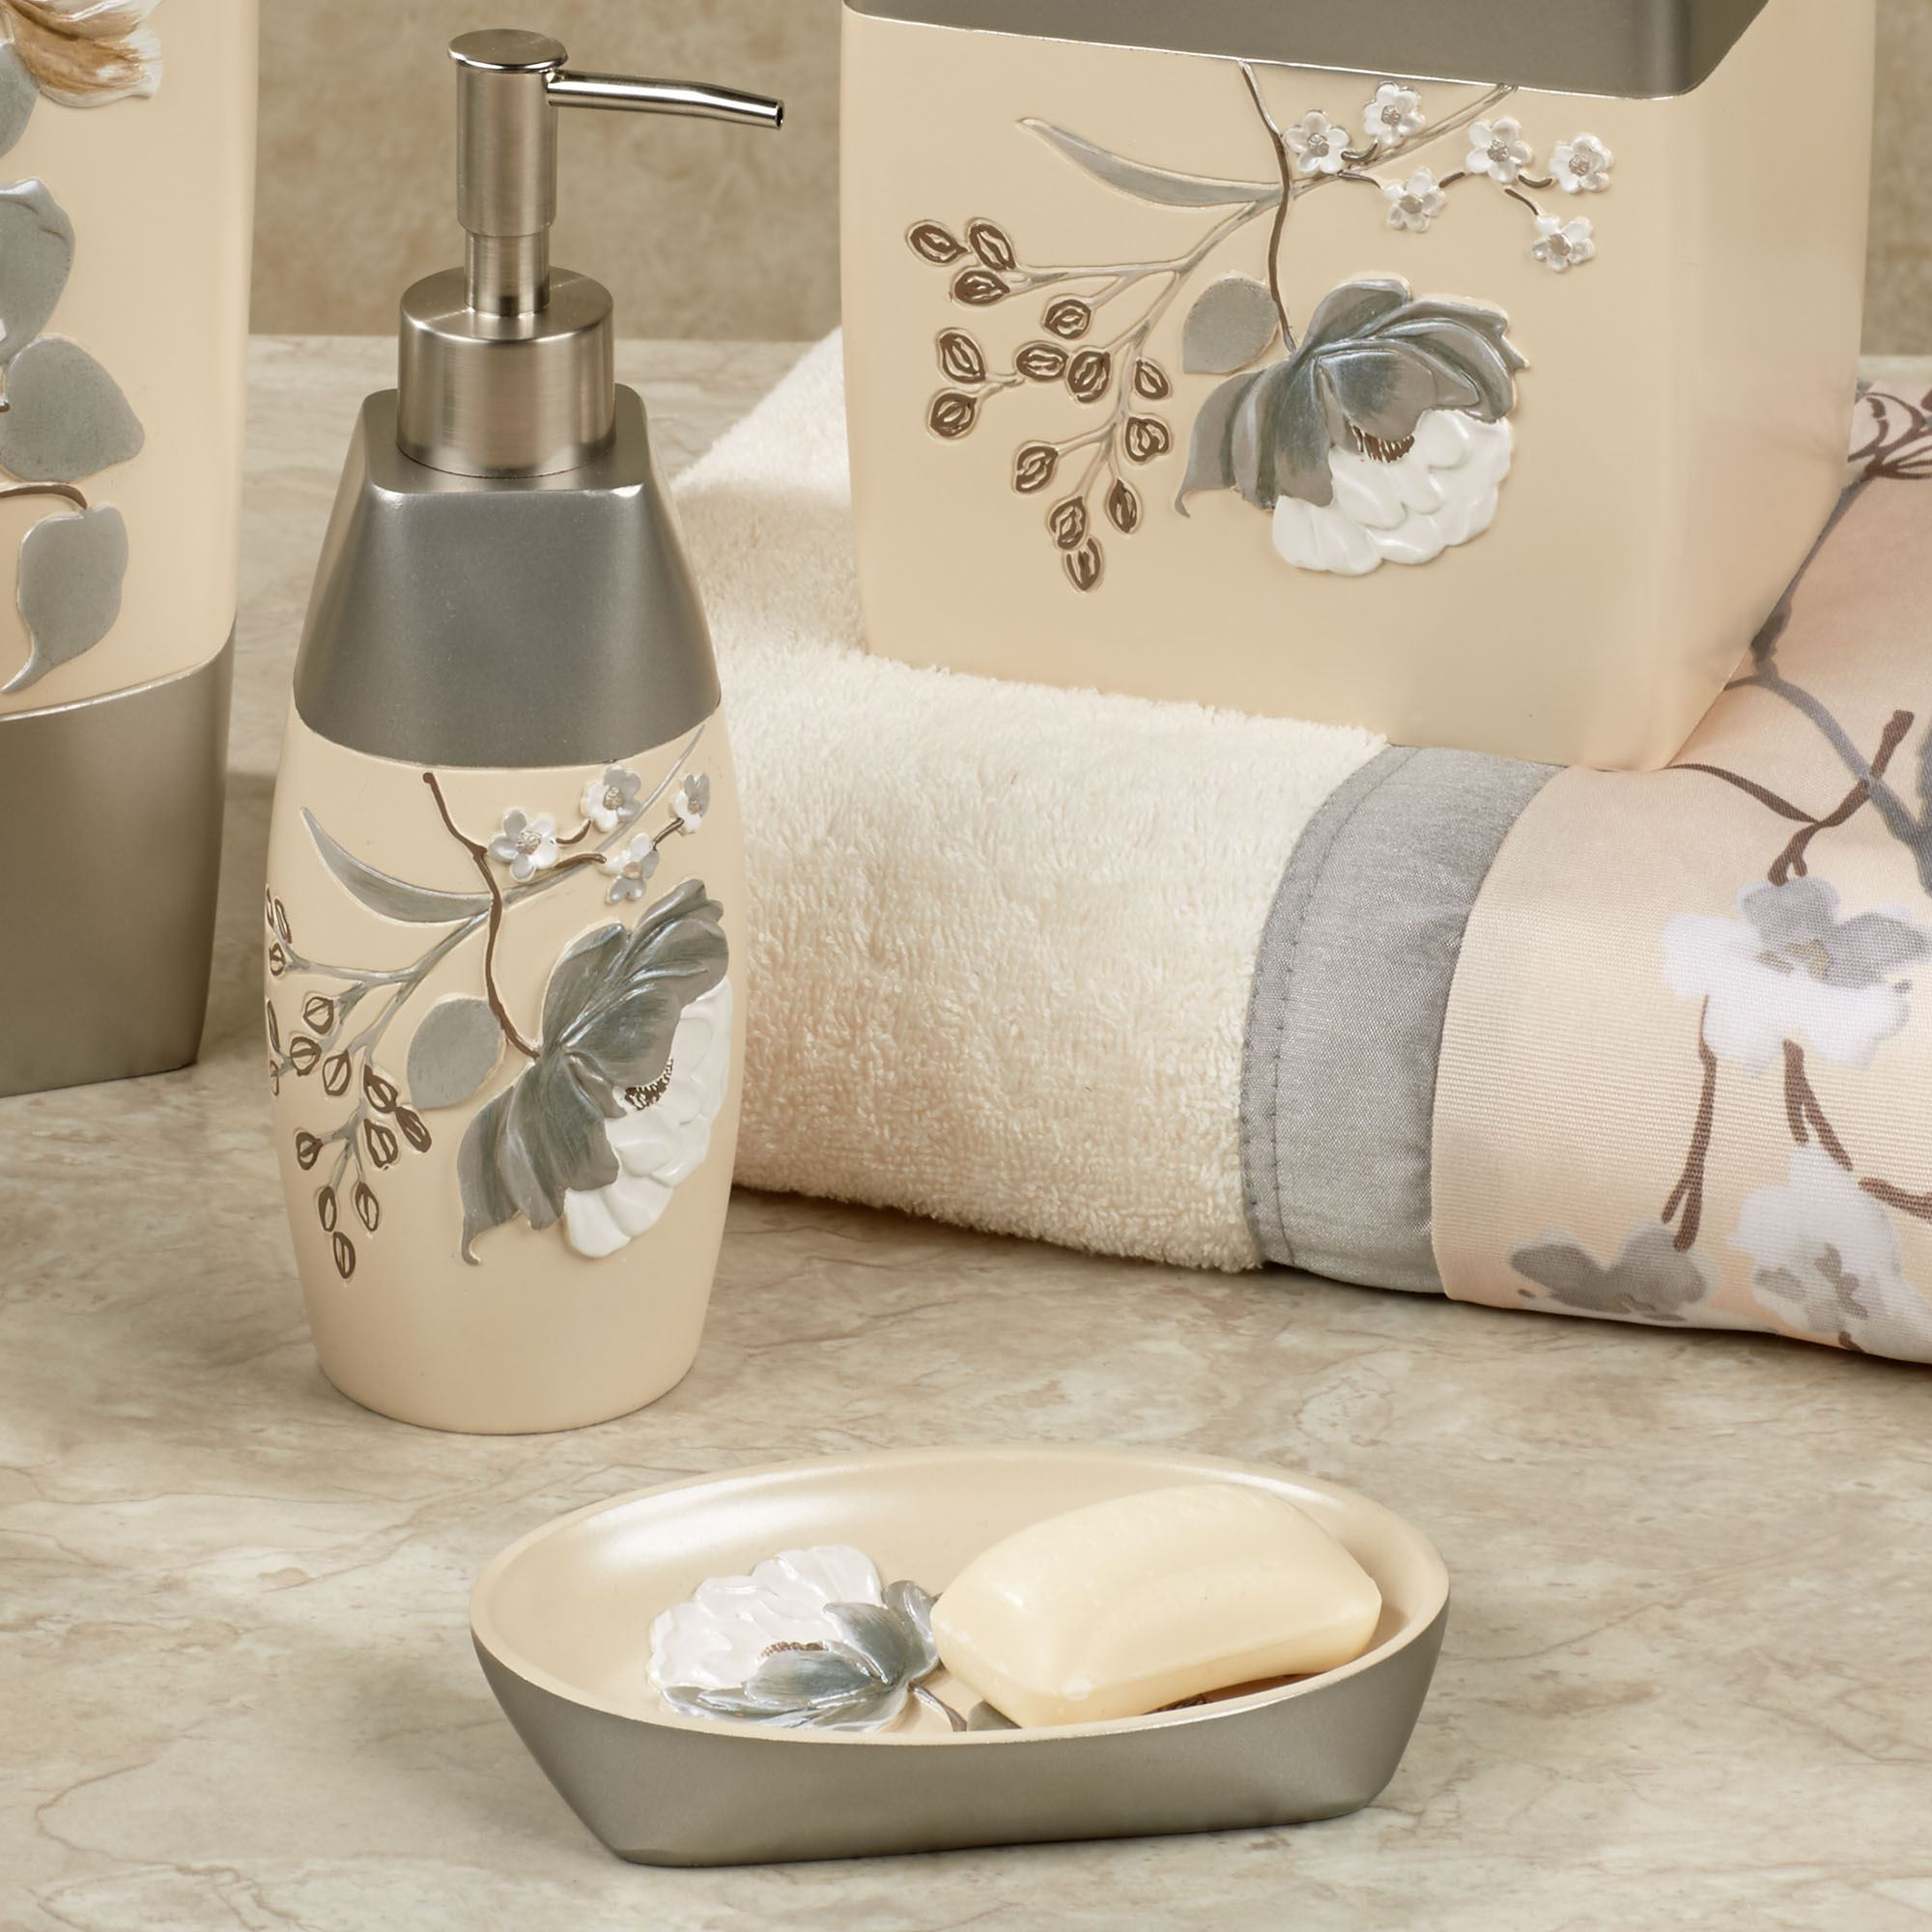 Ashley floral bath accessories for Floral bathroom accessories set